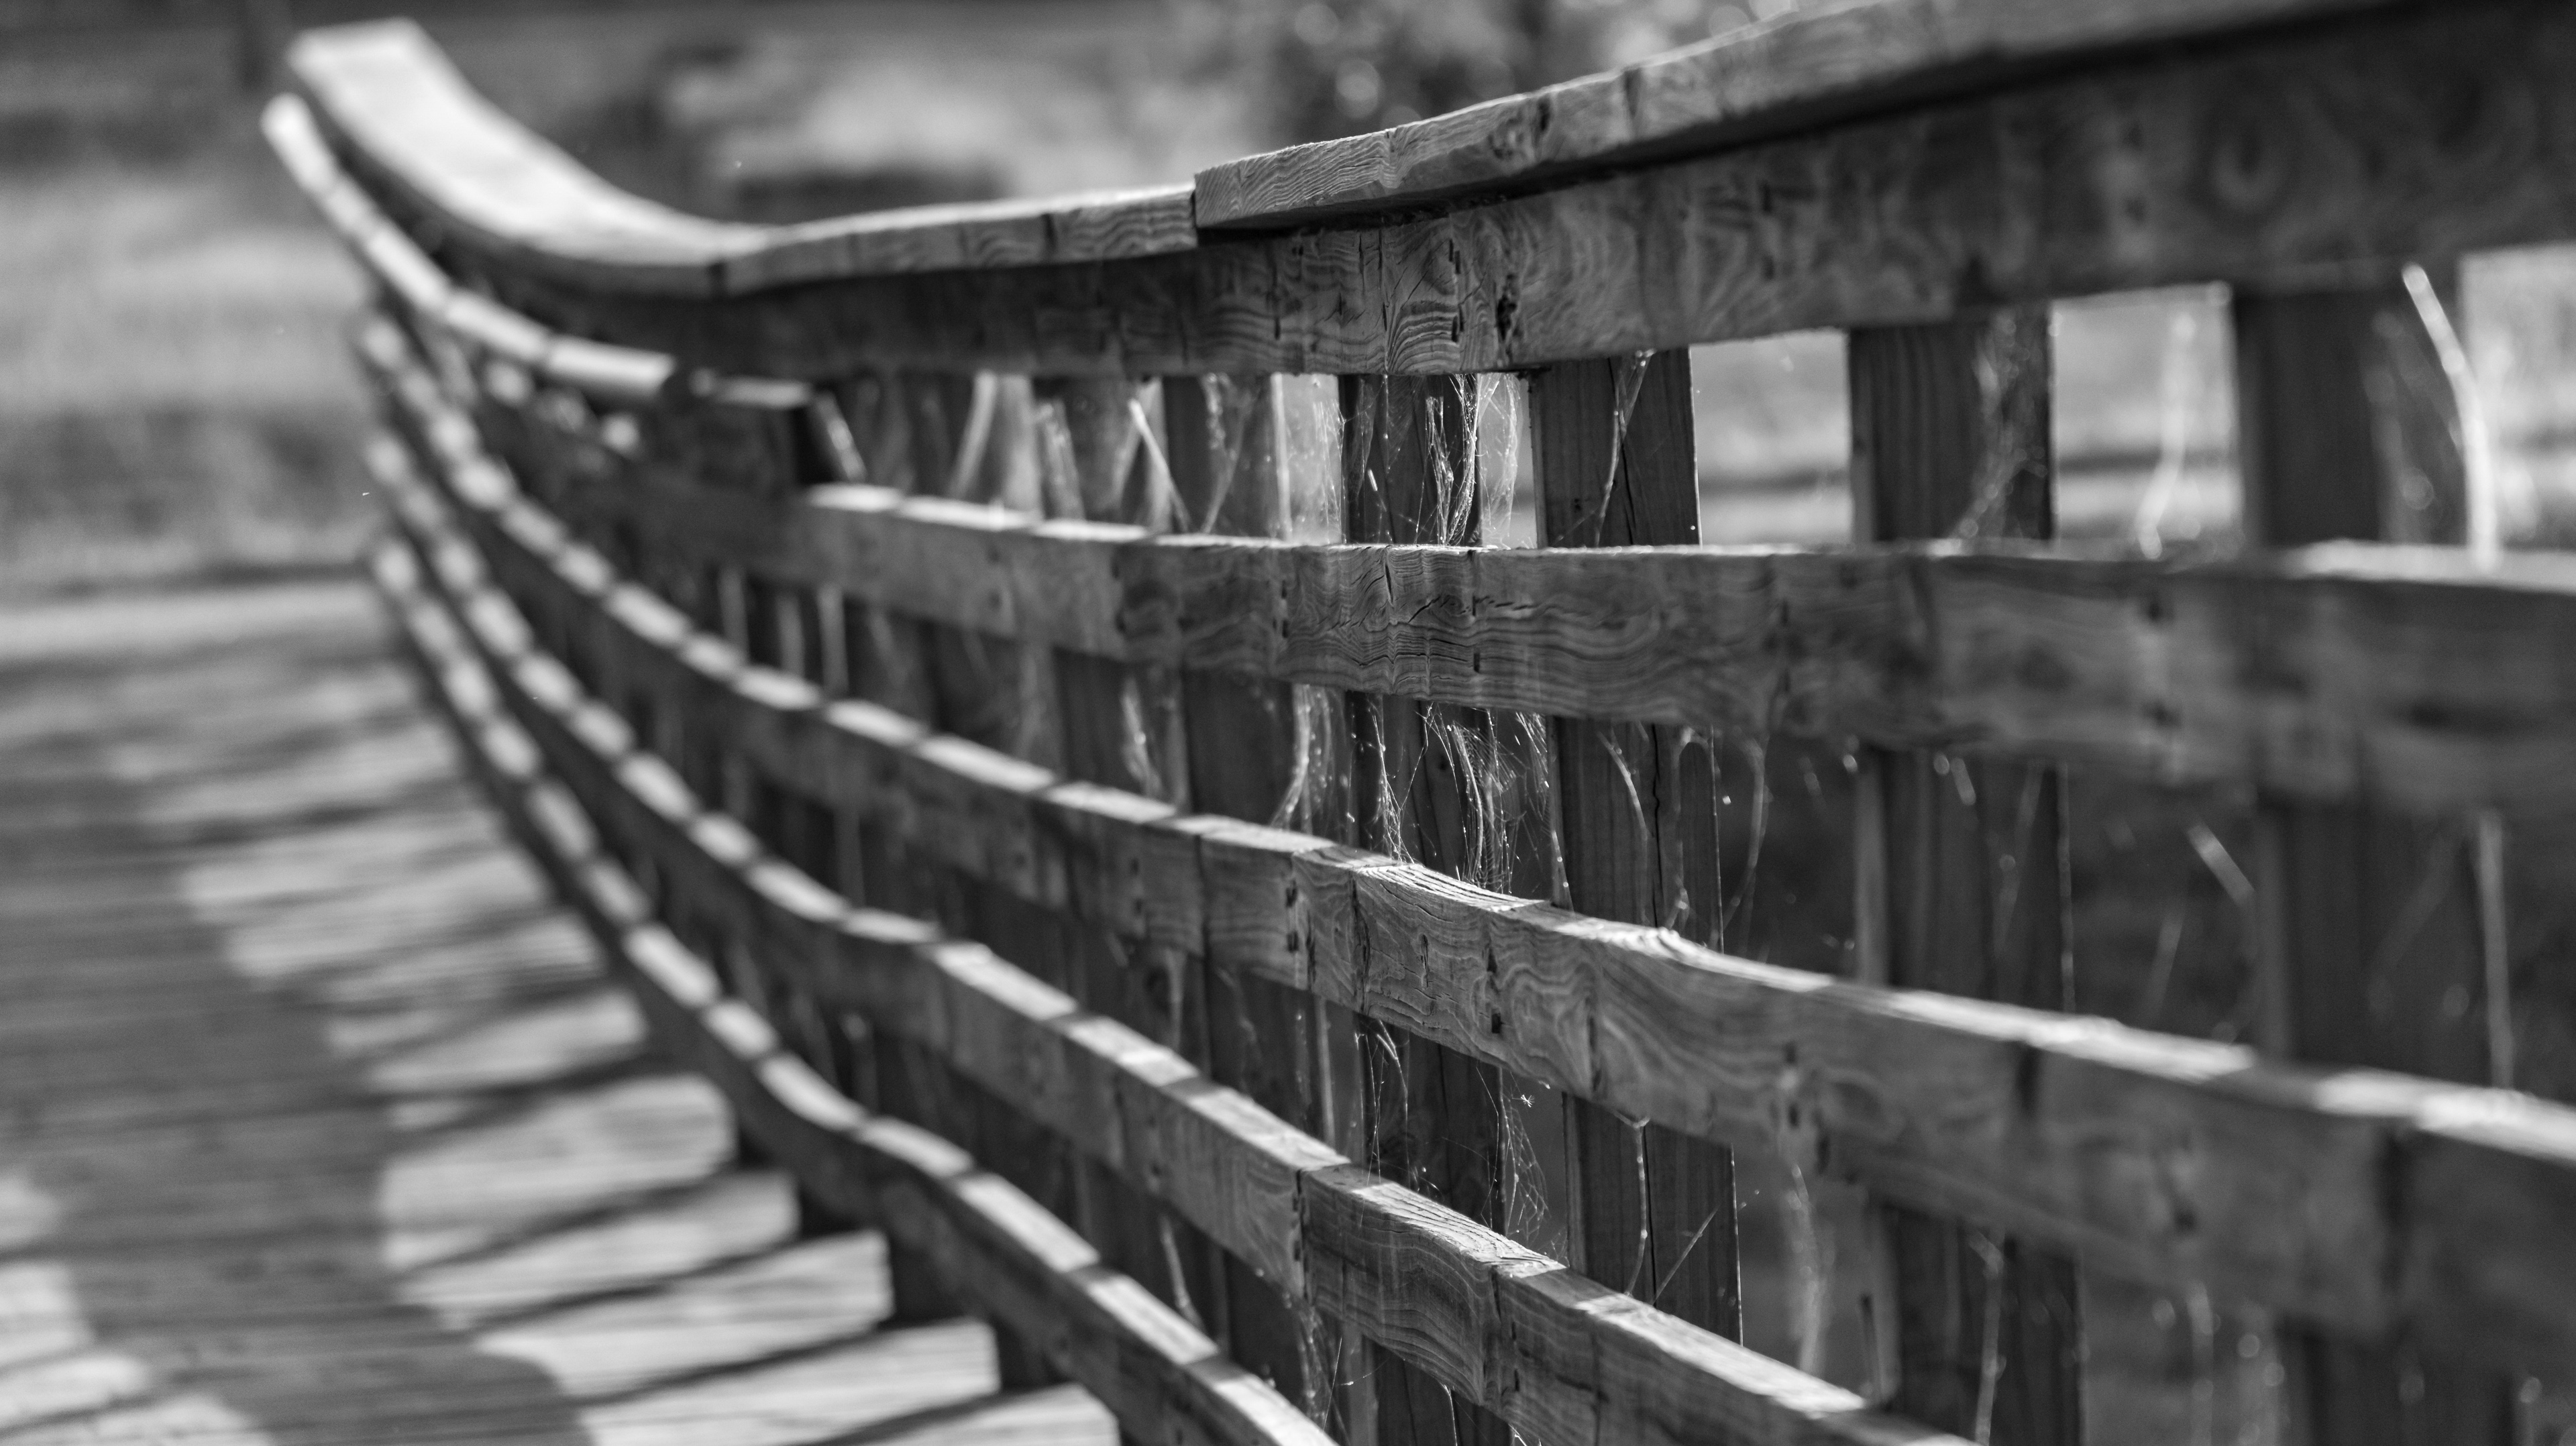 Pier in Black and White by Allen Irby